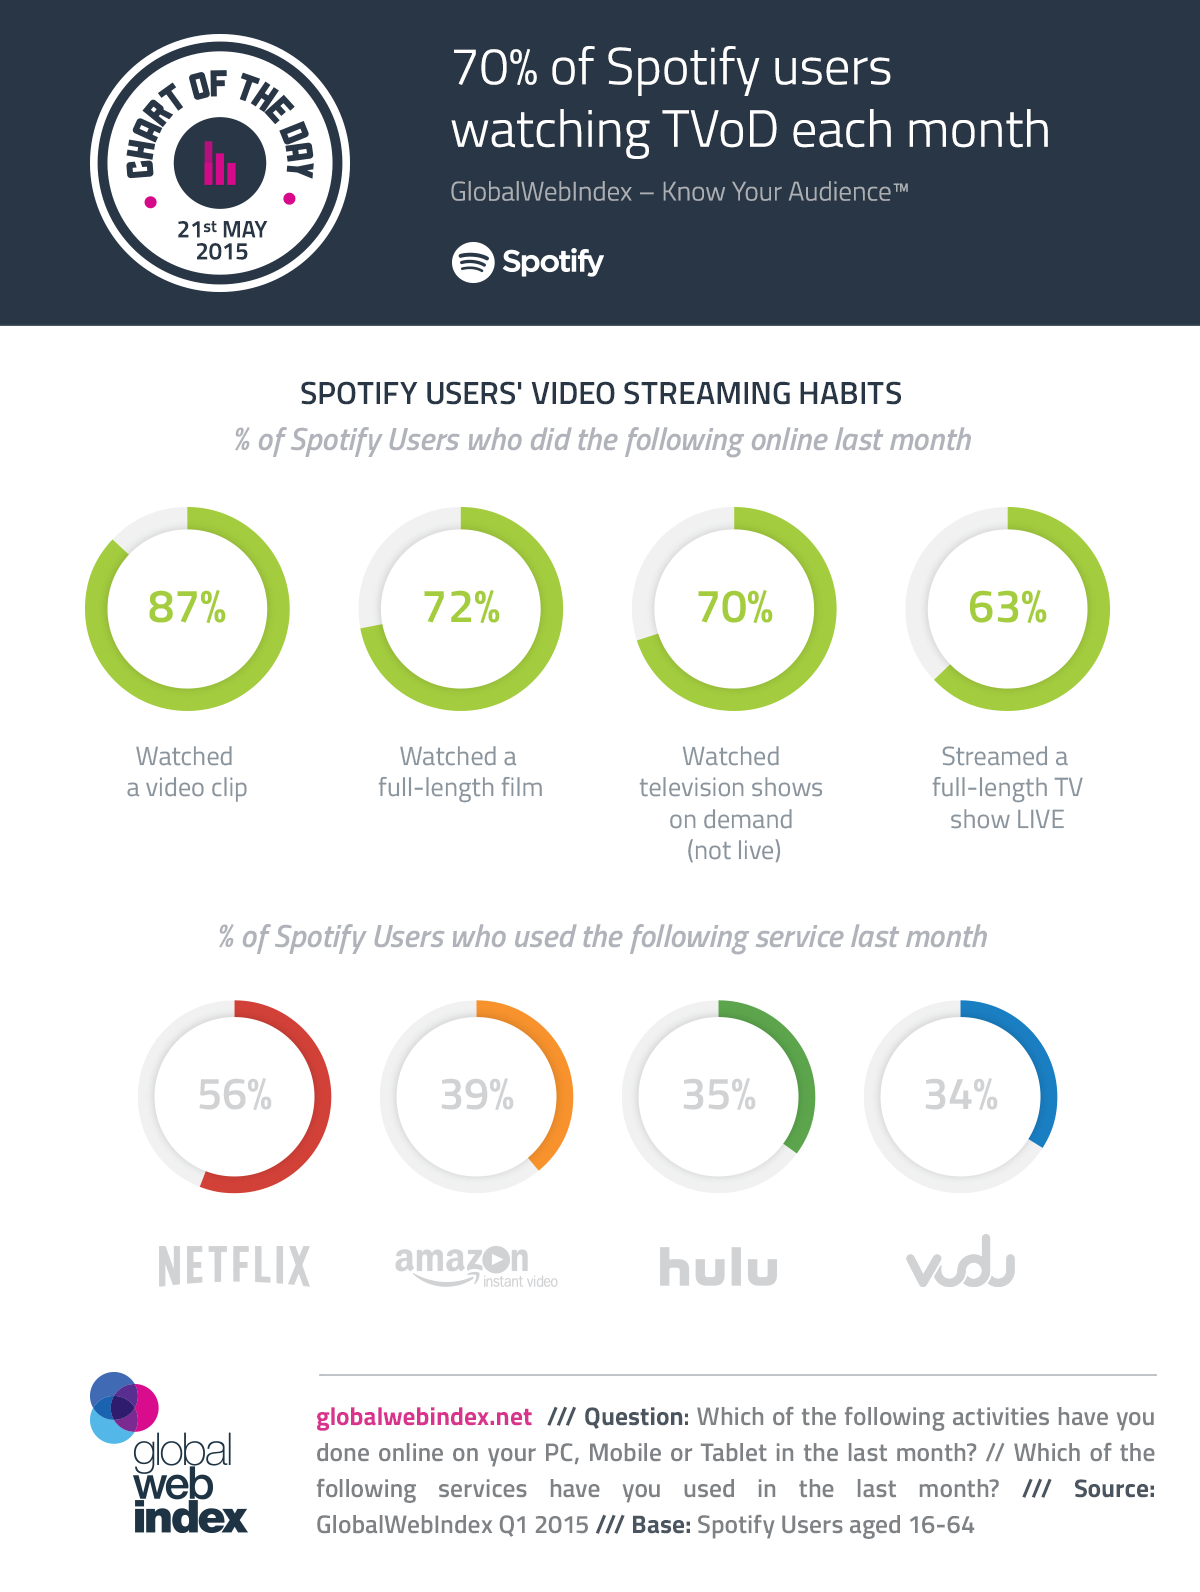 21st-May-2015-70-of-Spotify-users-watching-TVoD-each-month